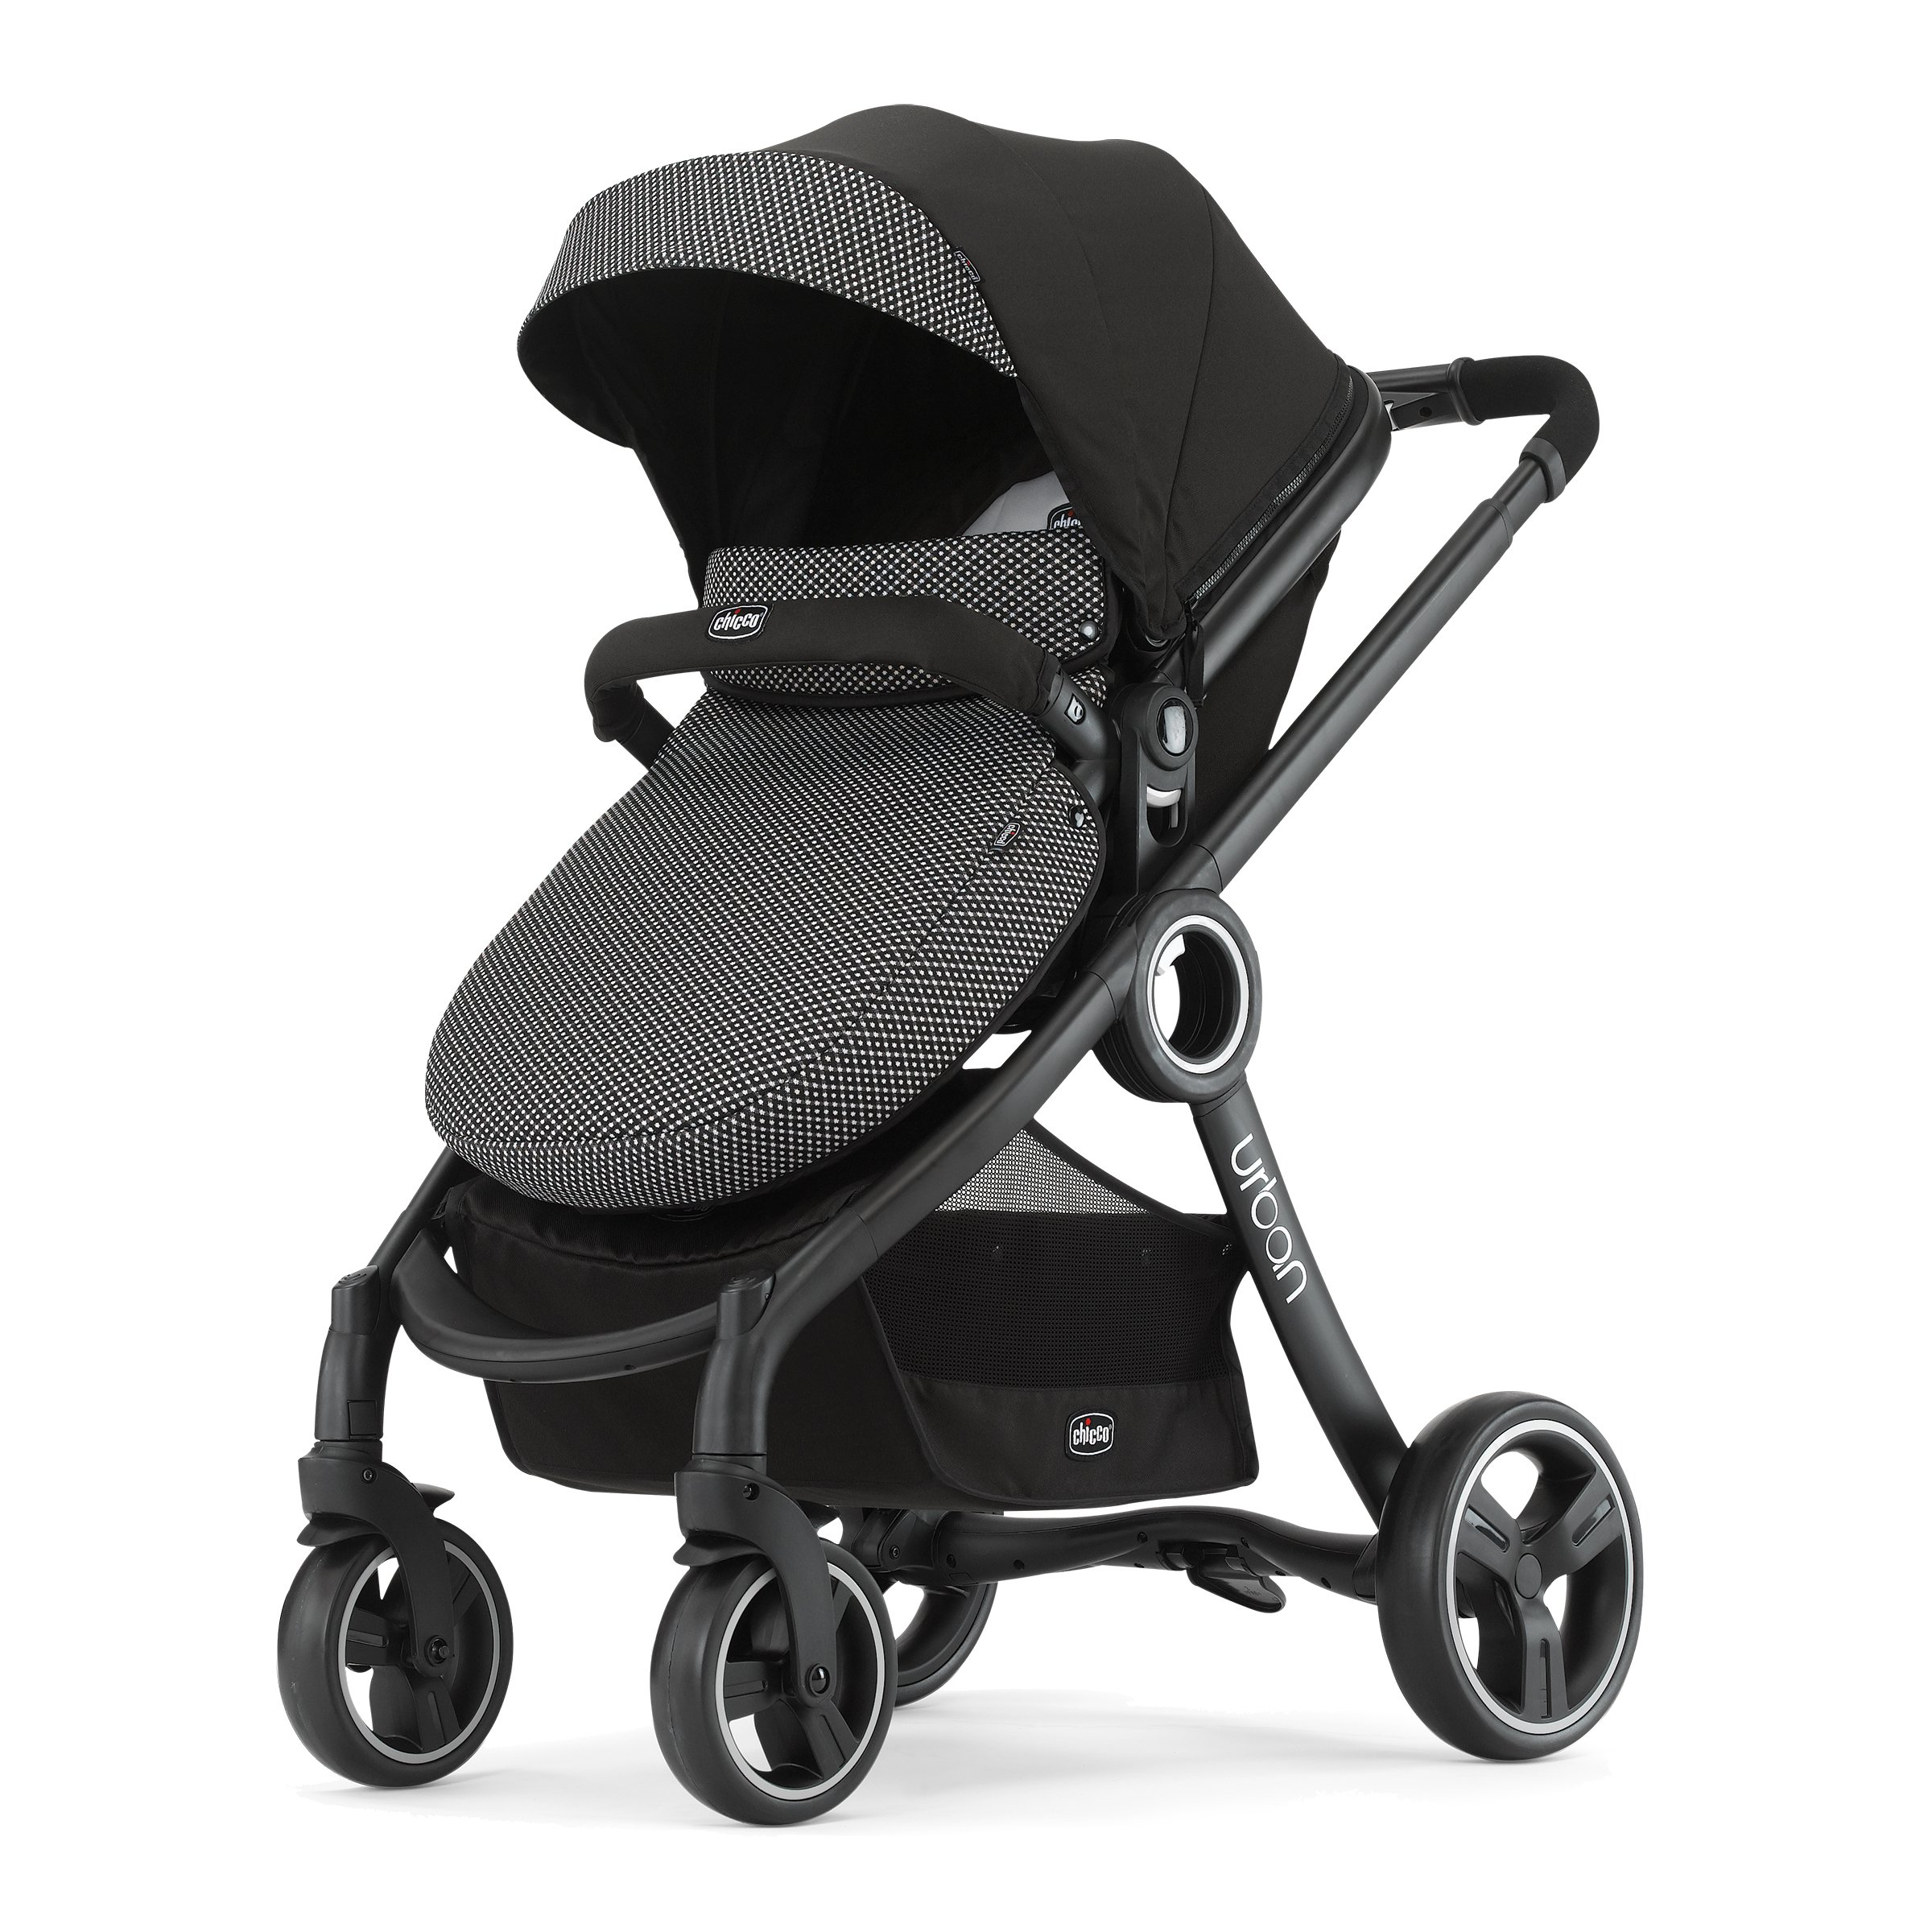 Uno2duo Stroller Cheap Double Stroller Chicco Find Double Stroller Chicco